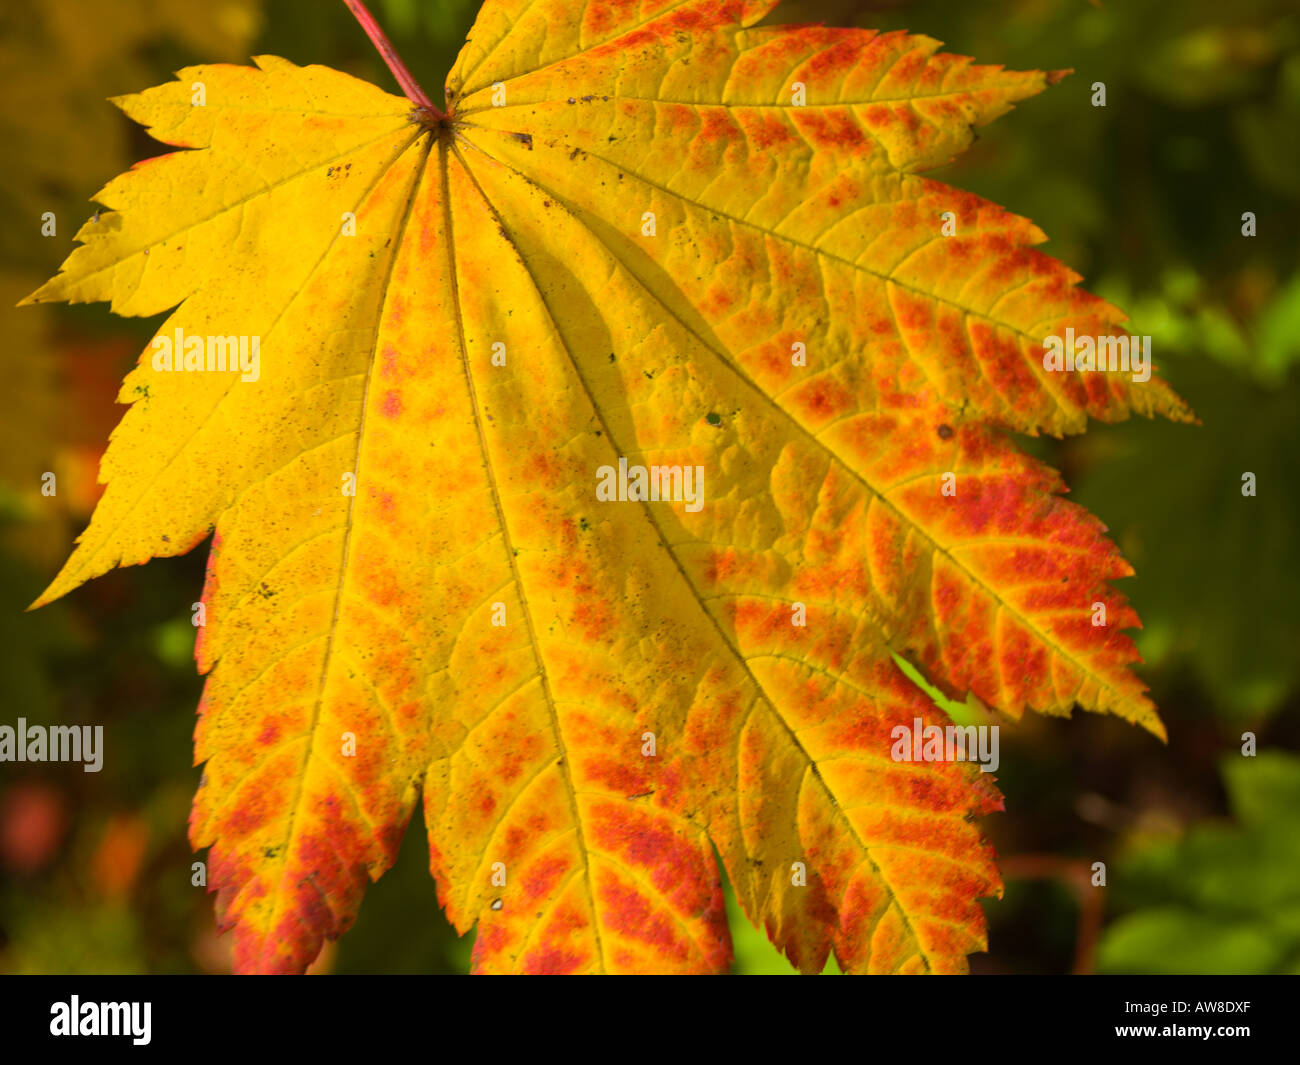 8 best images about Small Trees for Sunset zone 17 on ... |Full Moon Maple Leaf